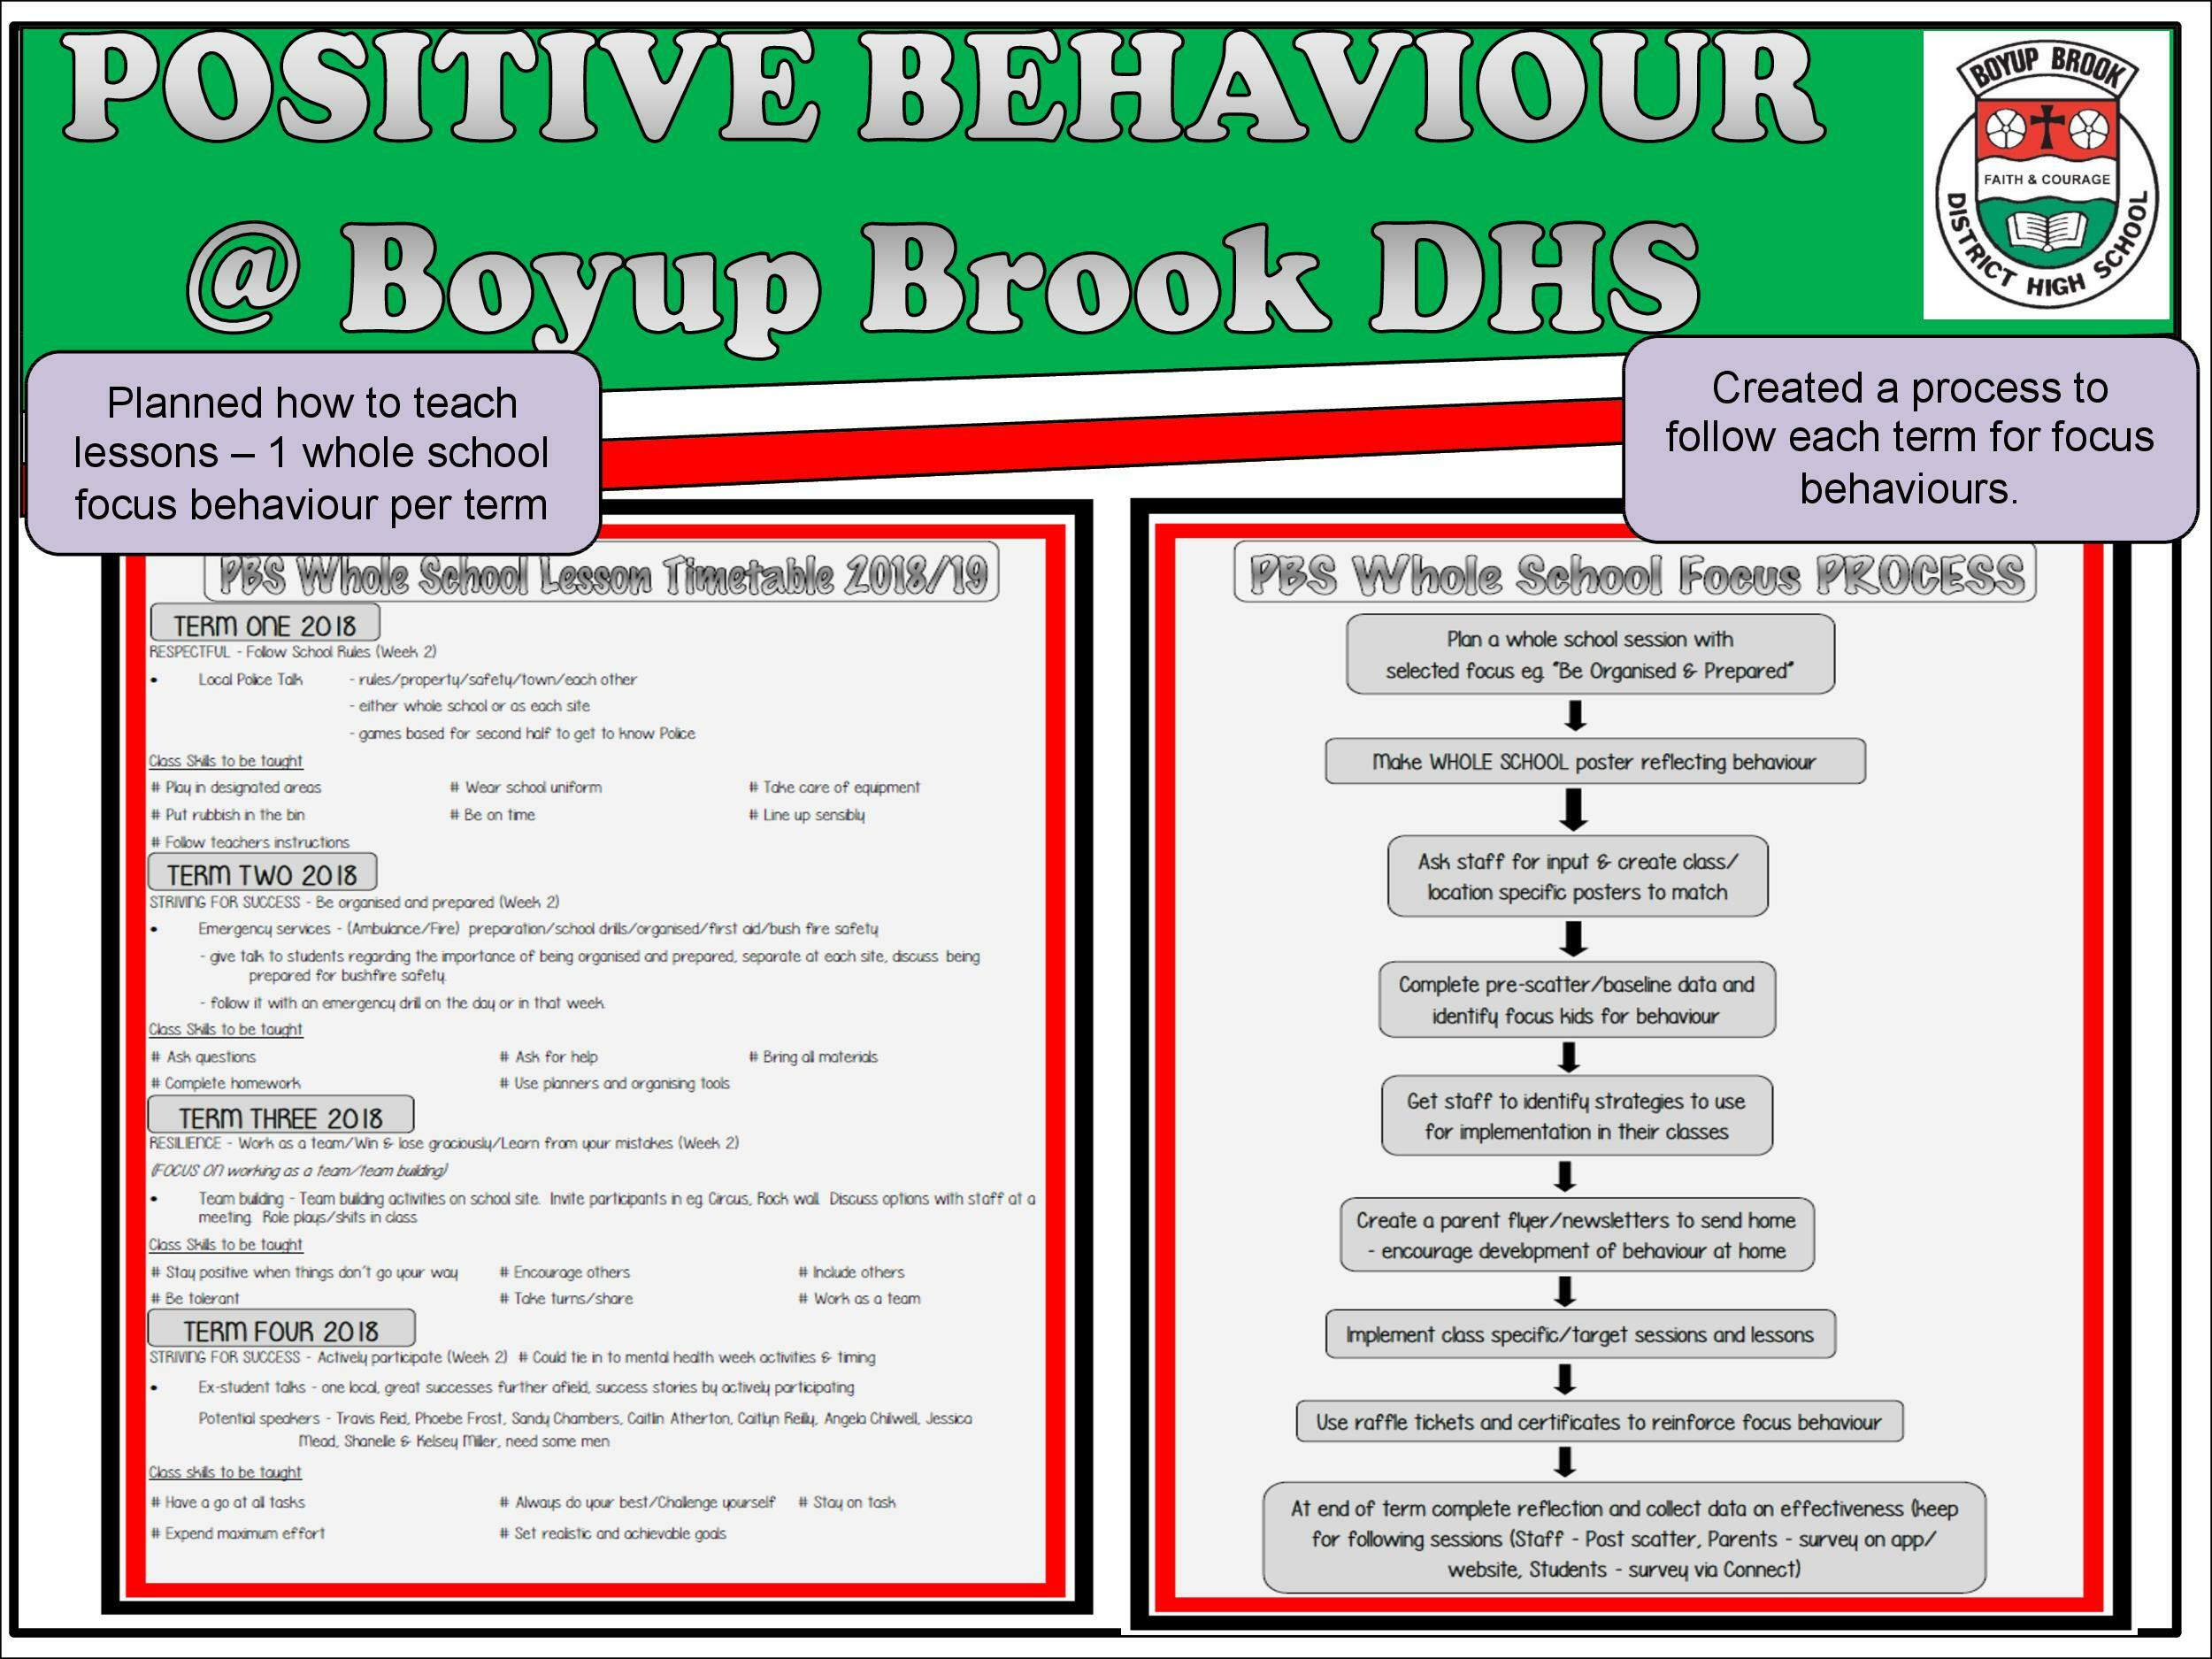 Positive Behaviour Support Page 17